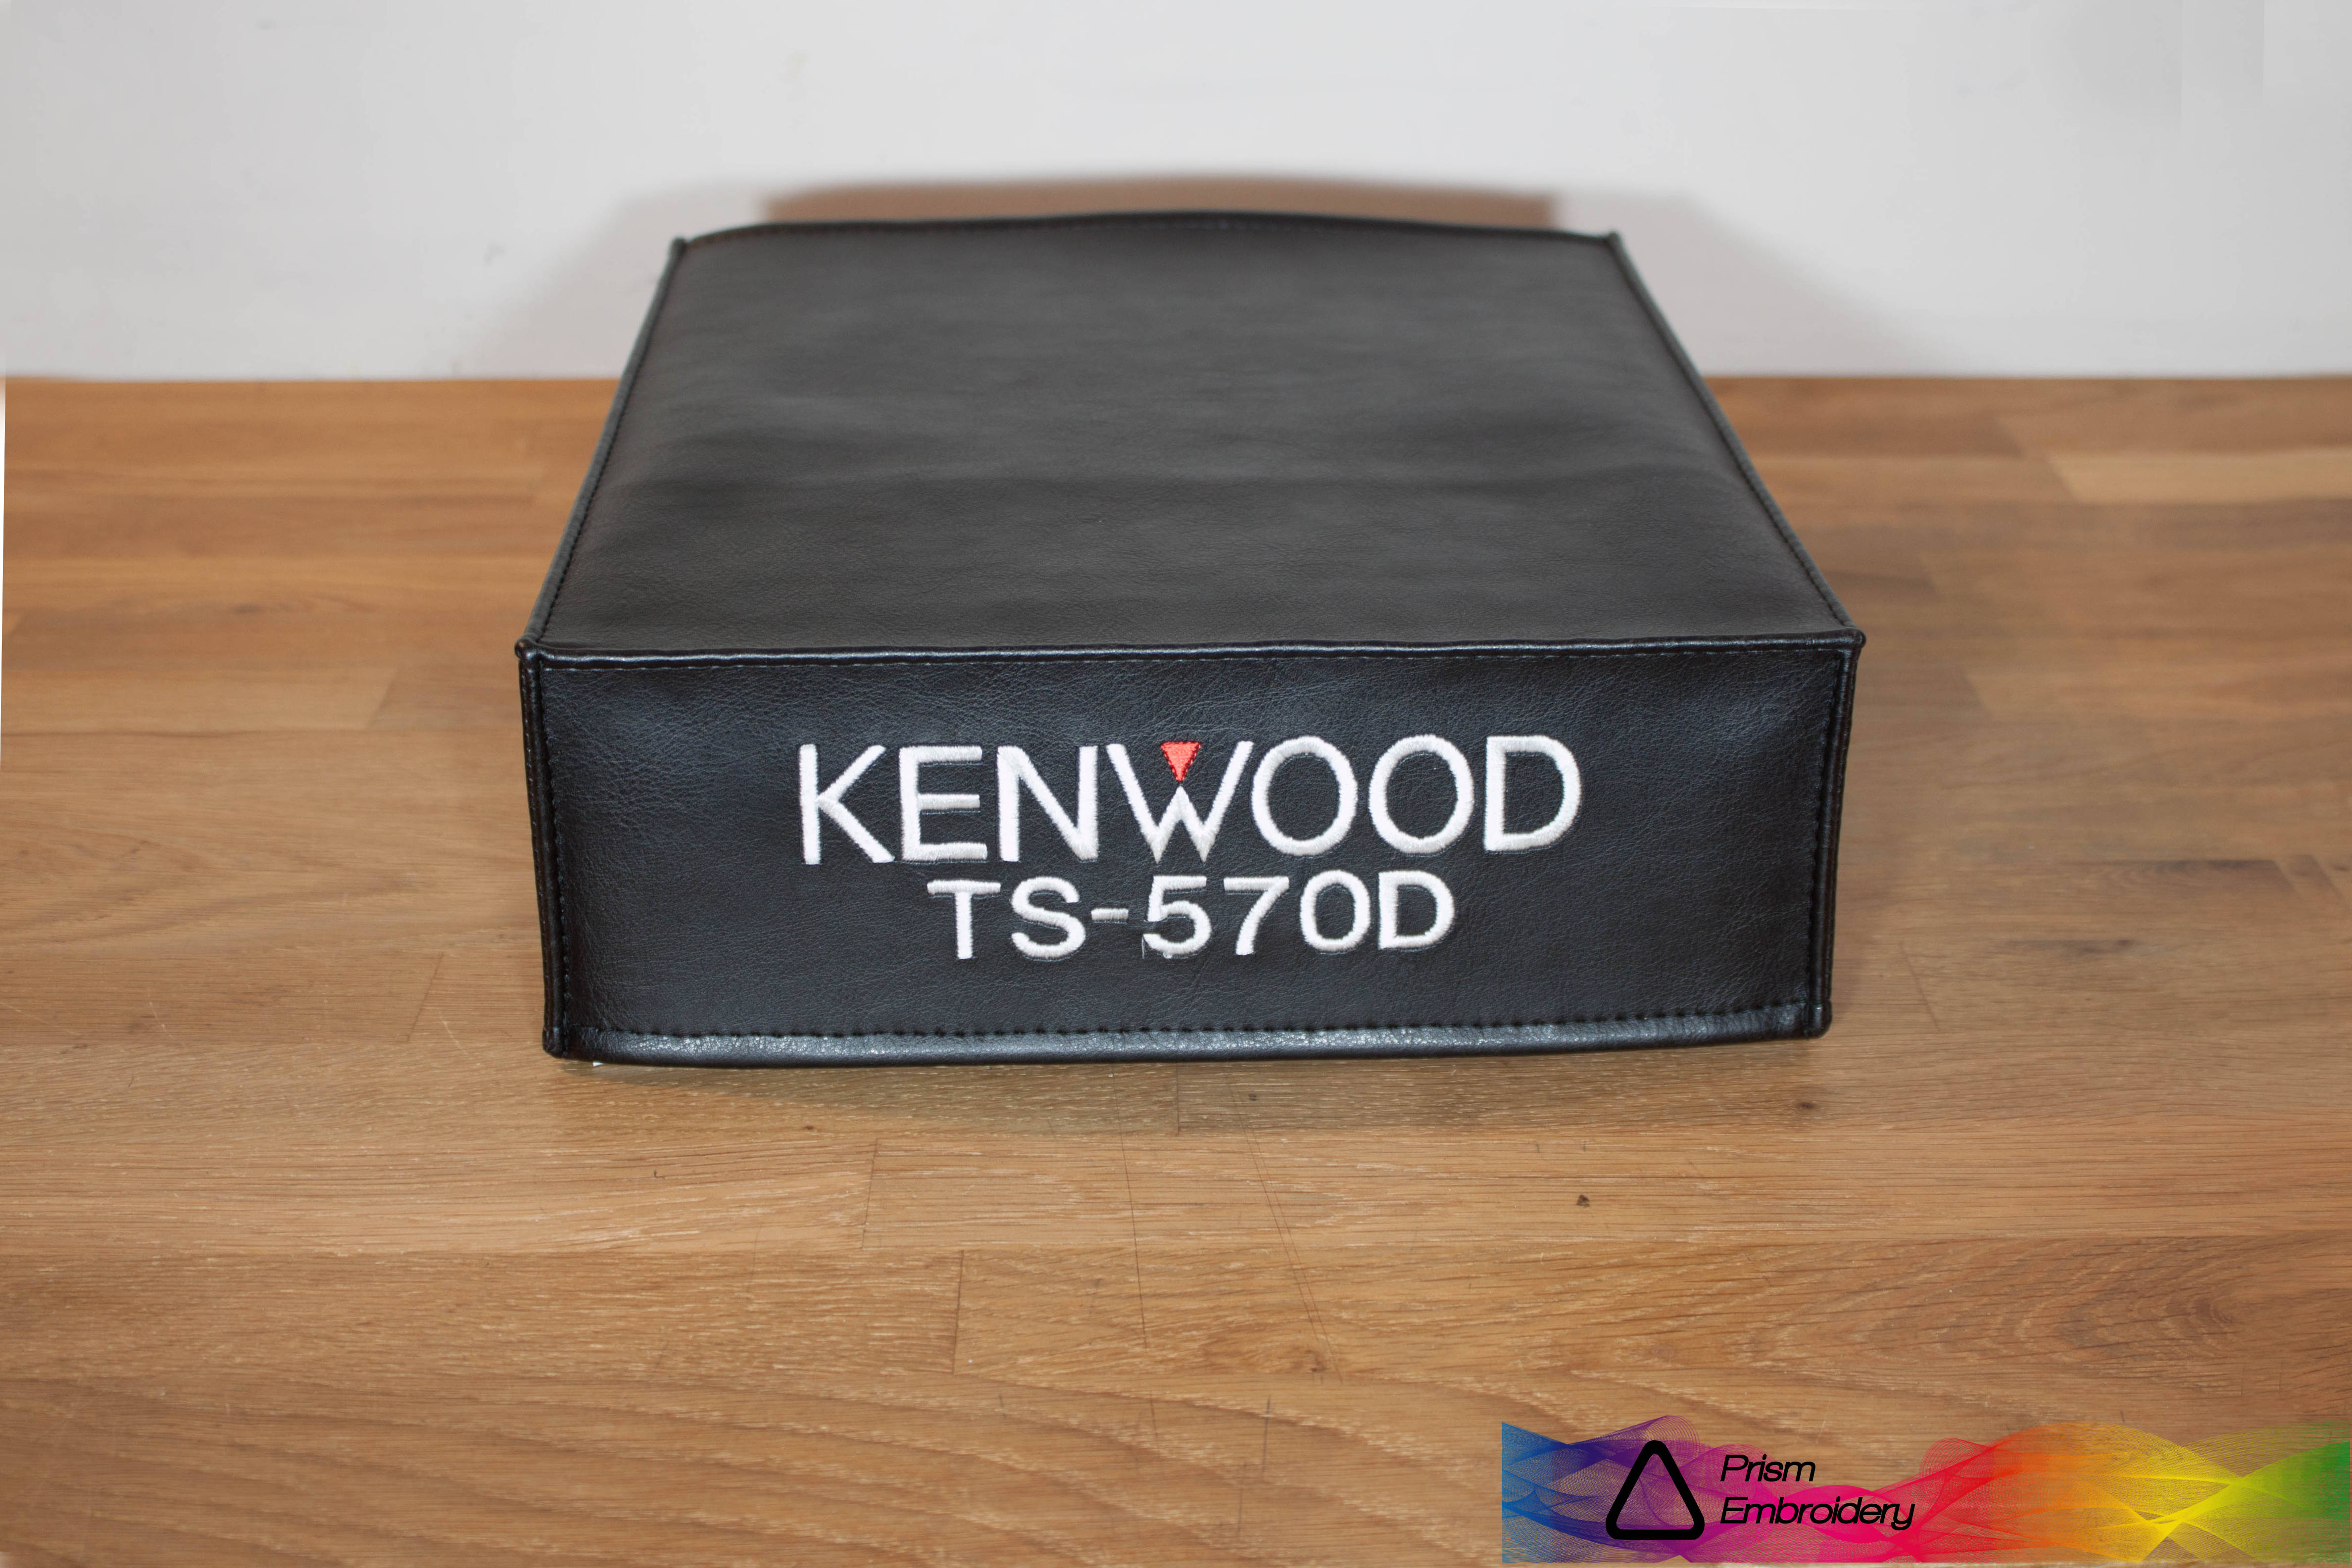 Kenwood TS-570 S, D, DG & SG DX Covers radio dust cover